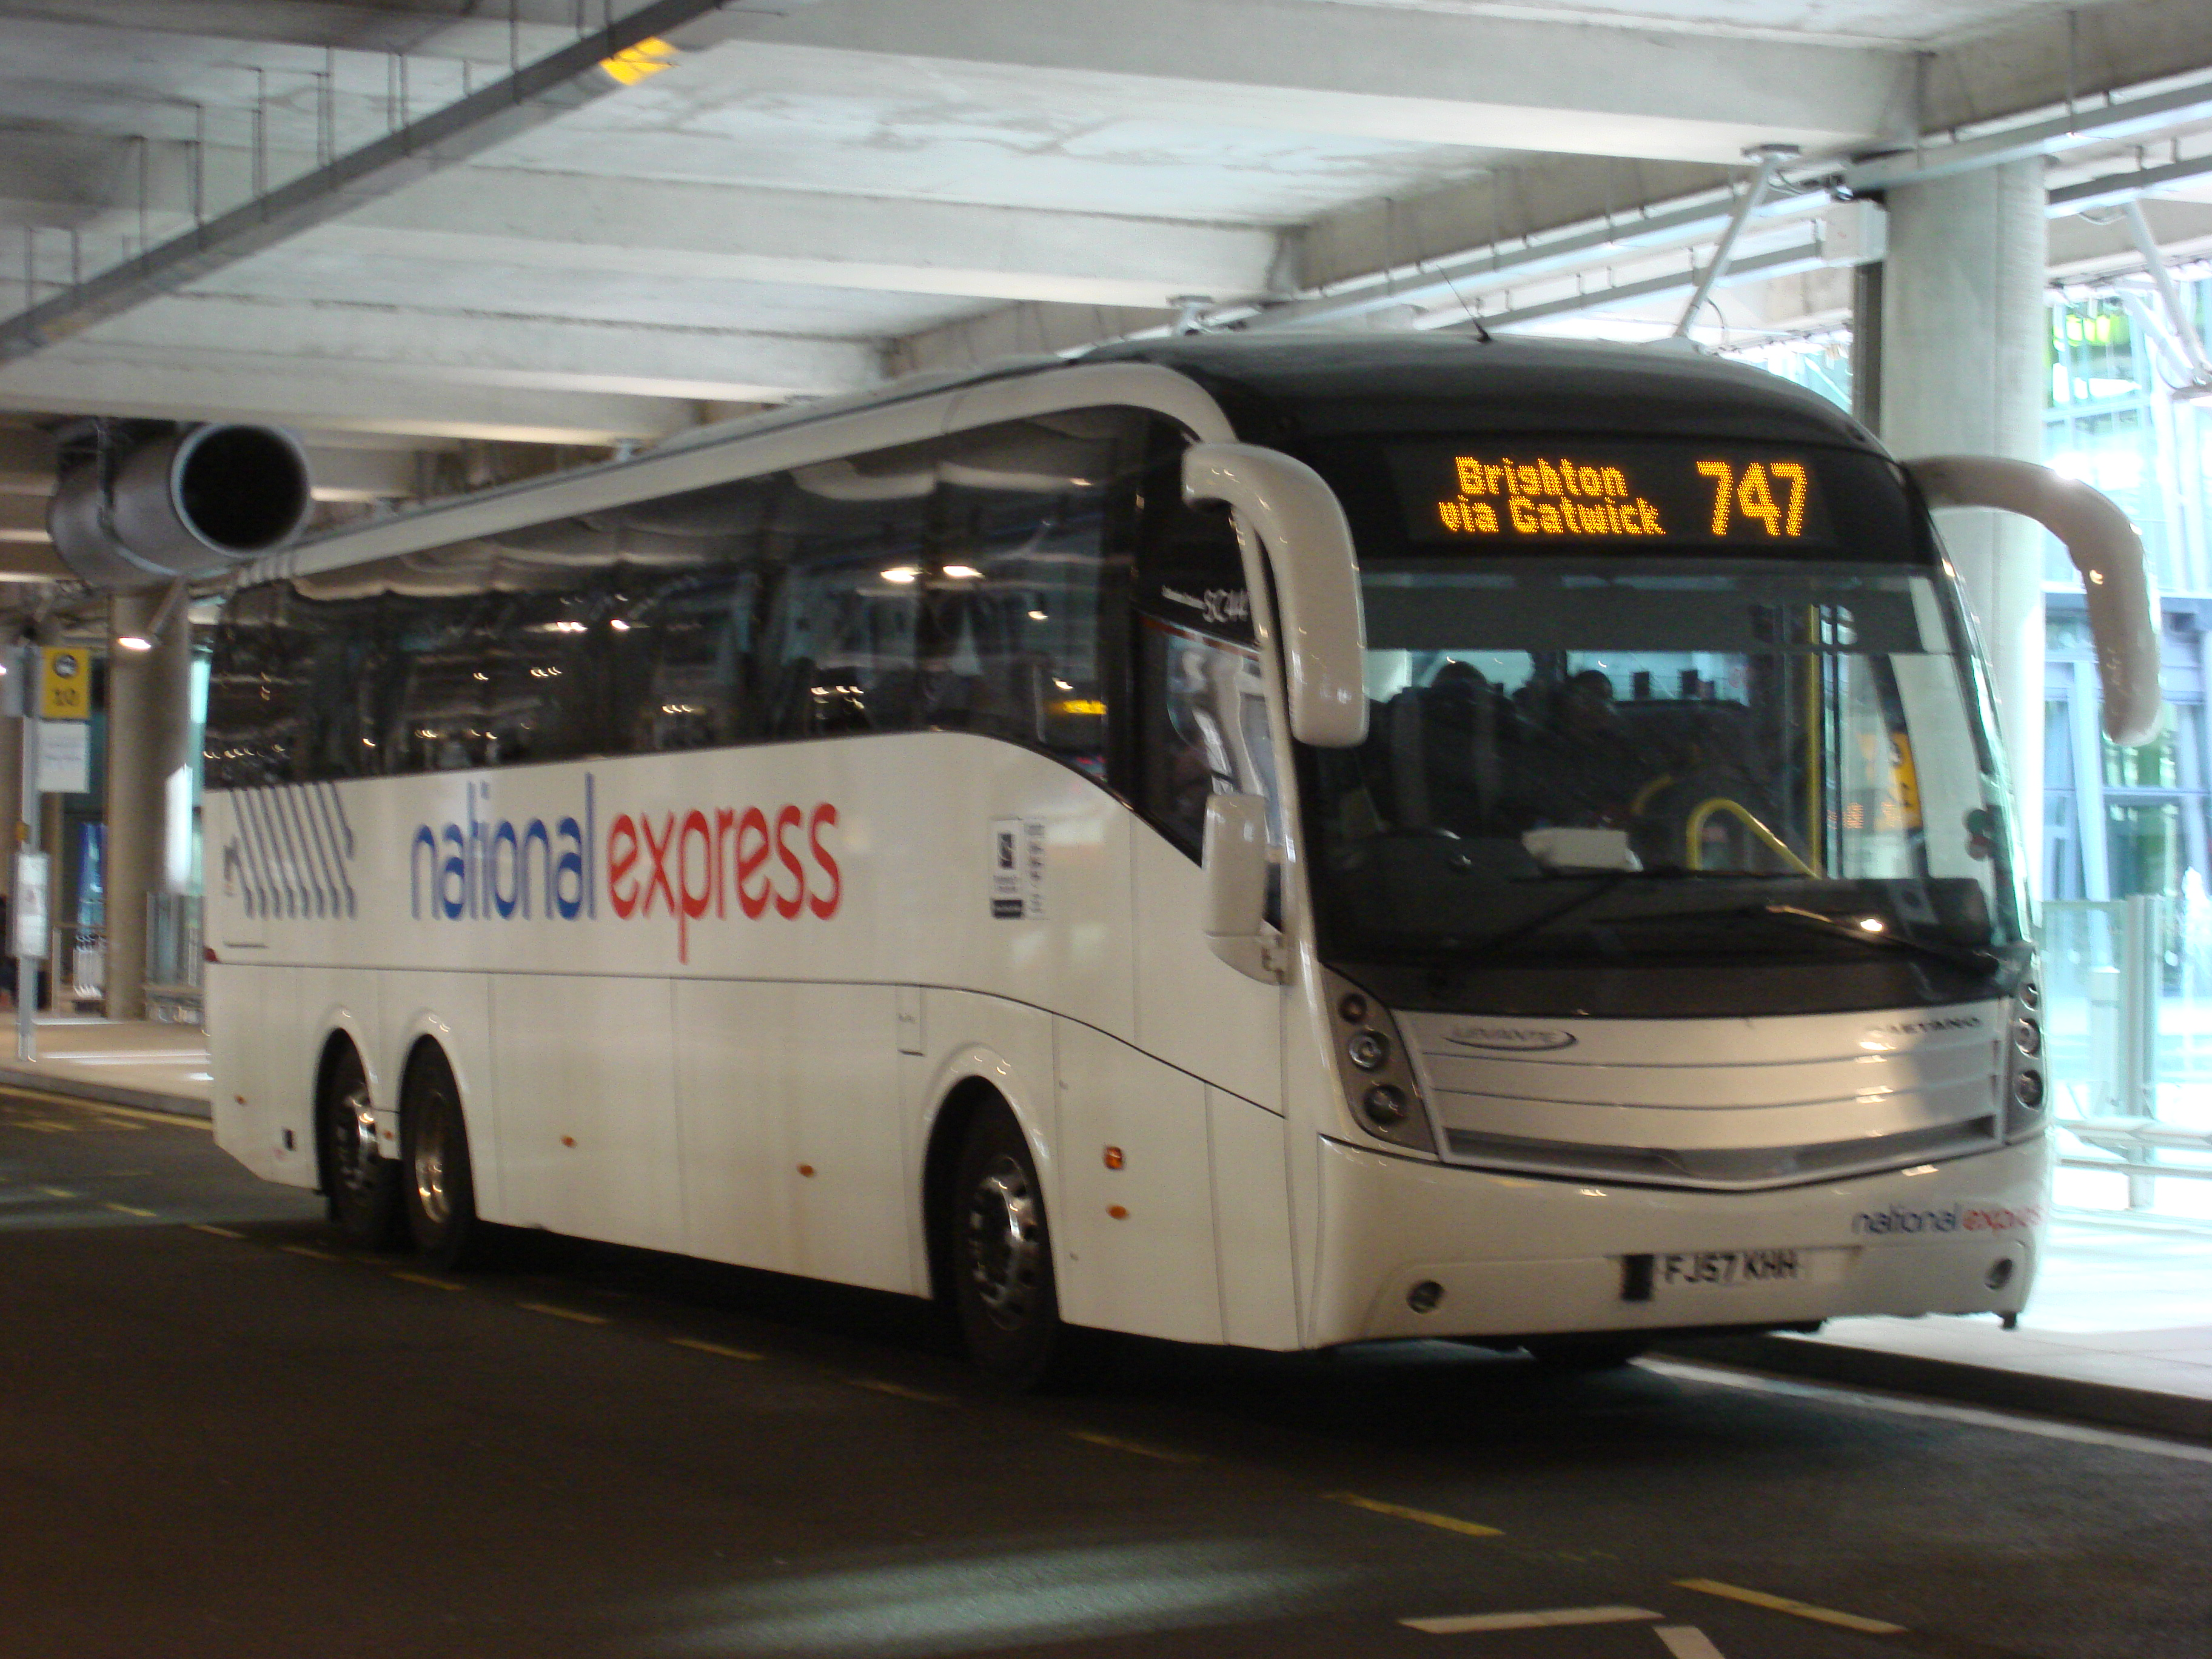 File:National Express route 747.jpg - Wikipedia